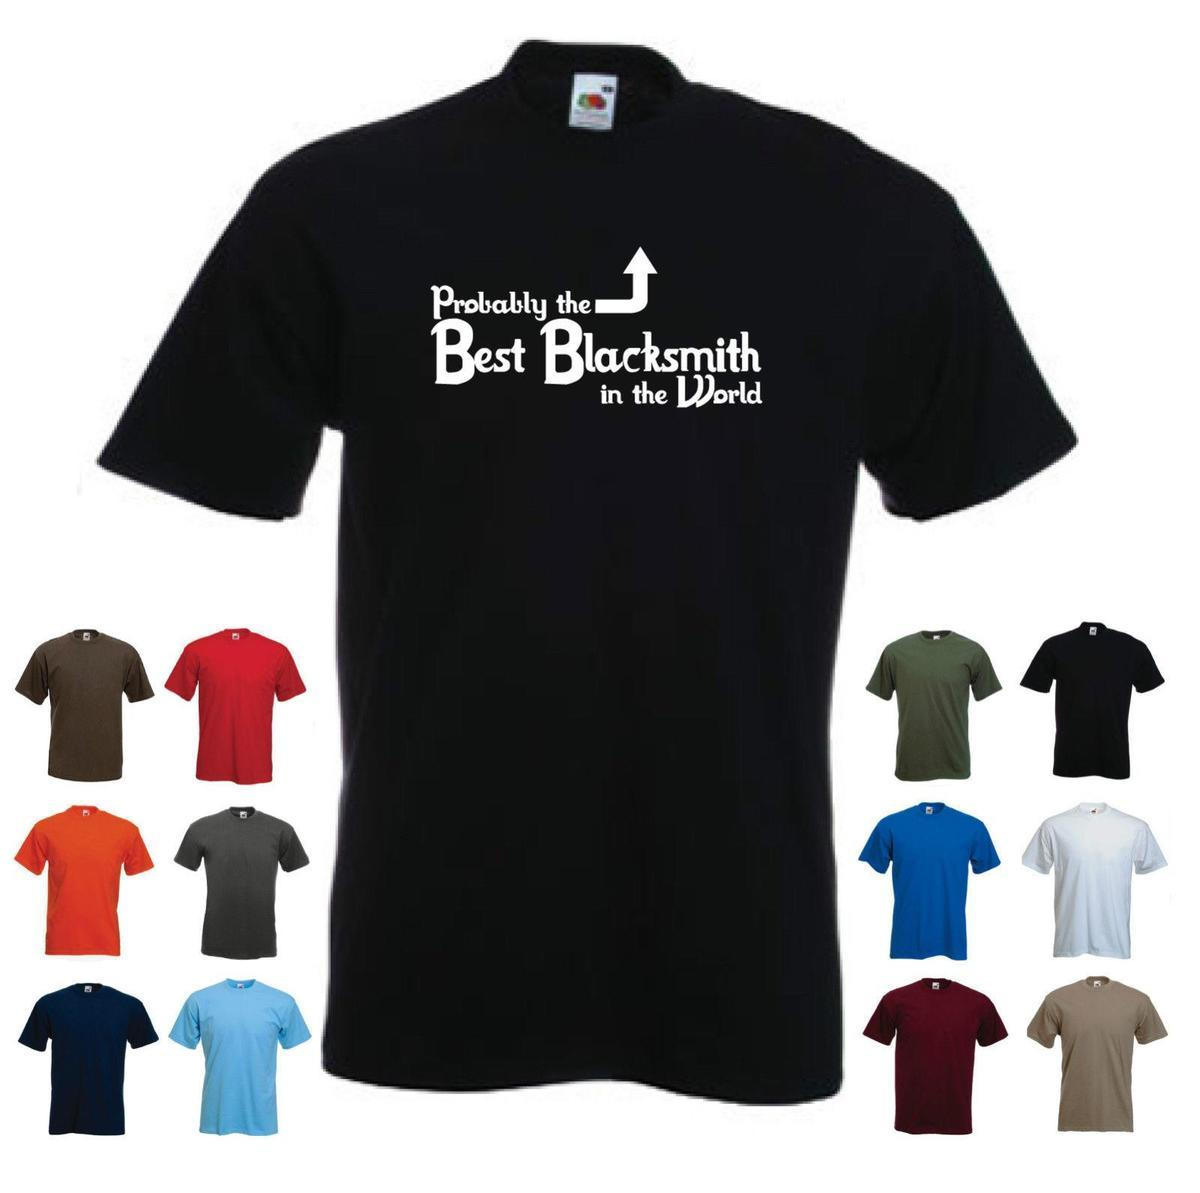 /'Probably the Best Blacksmith in the World/' Funny Men/'s T-shirt